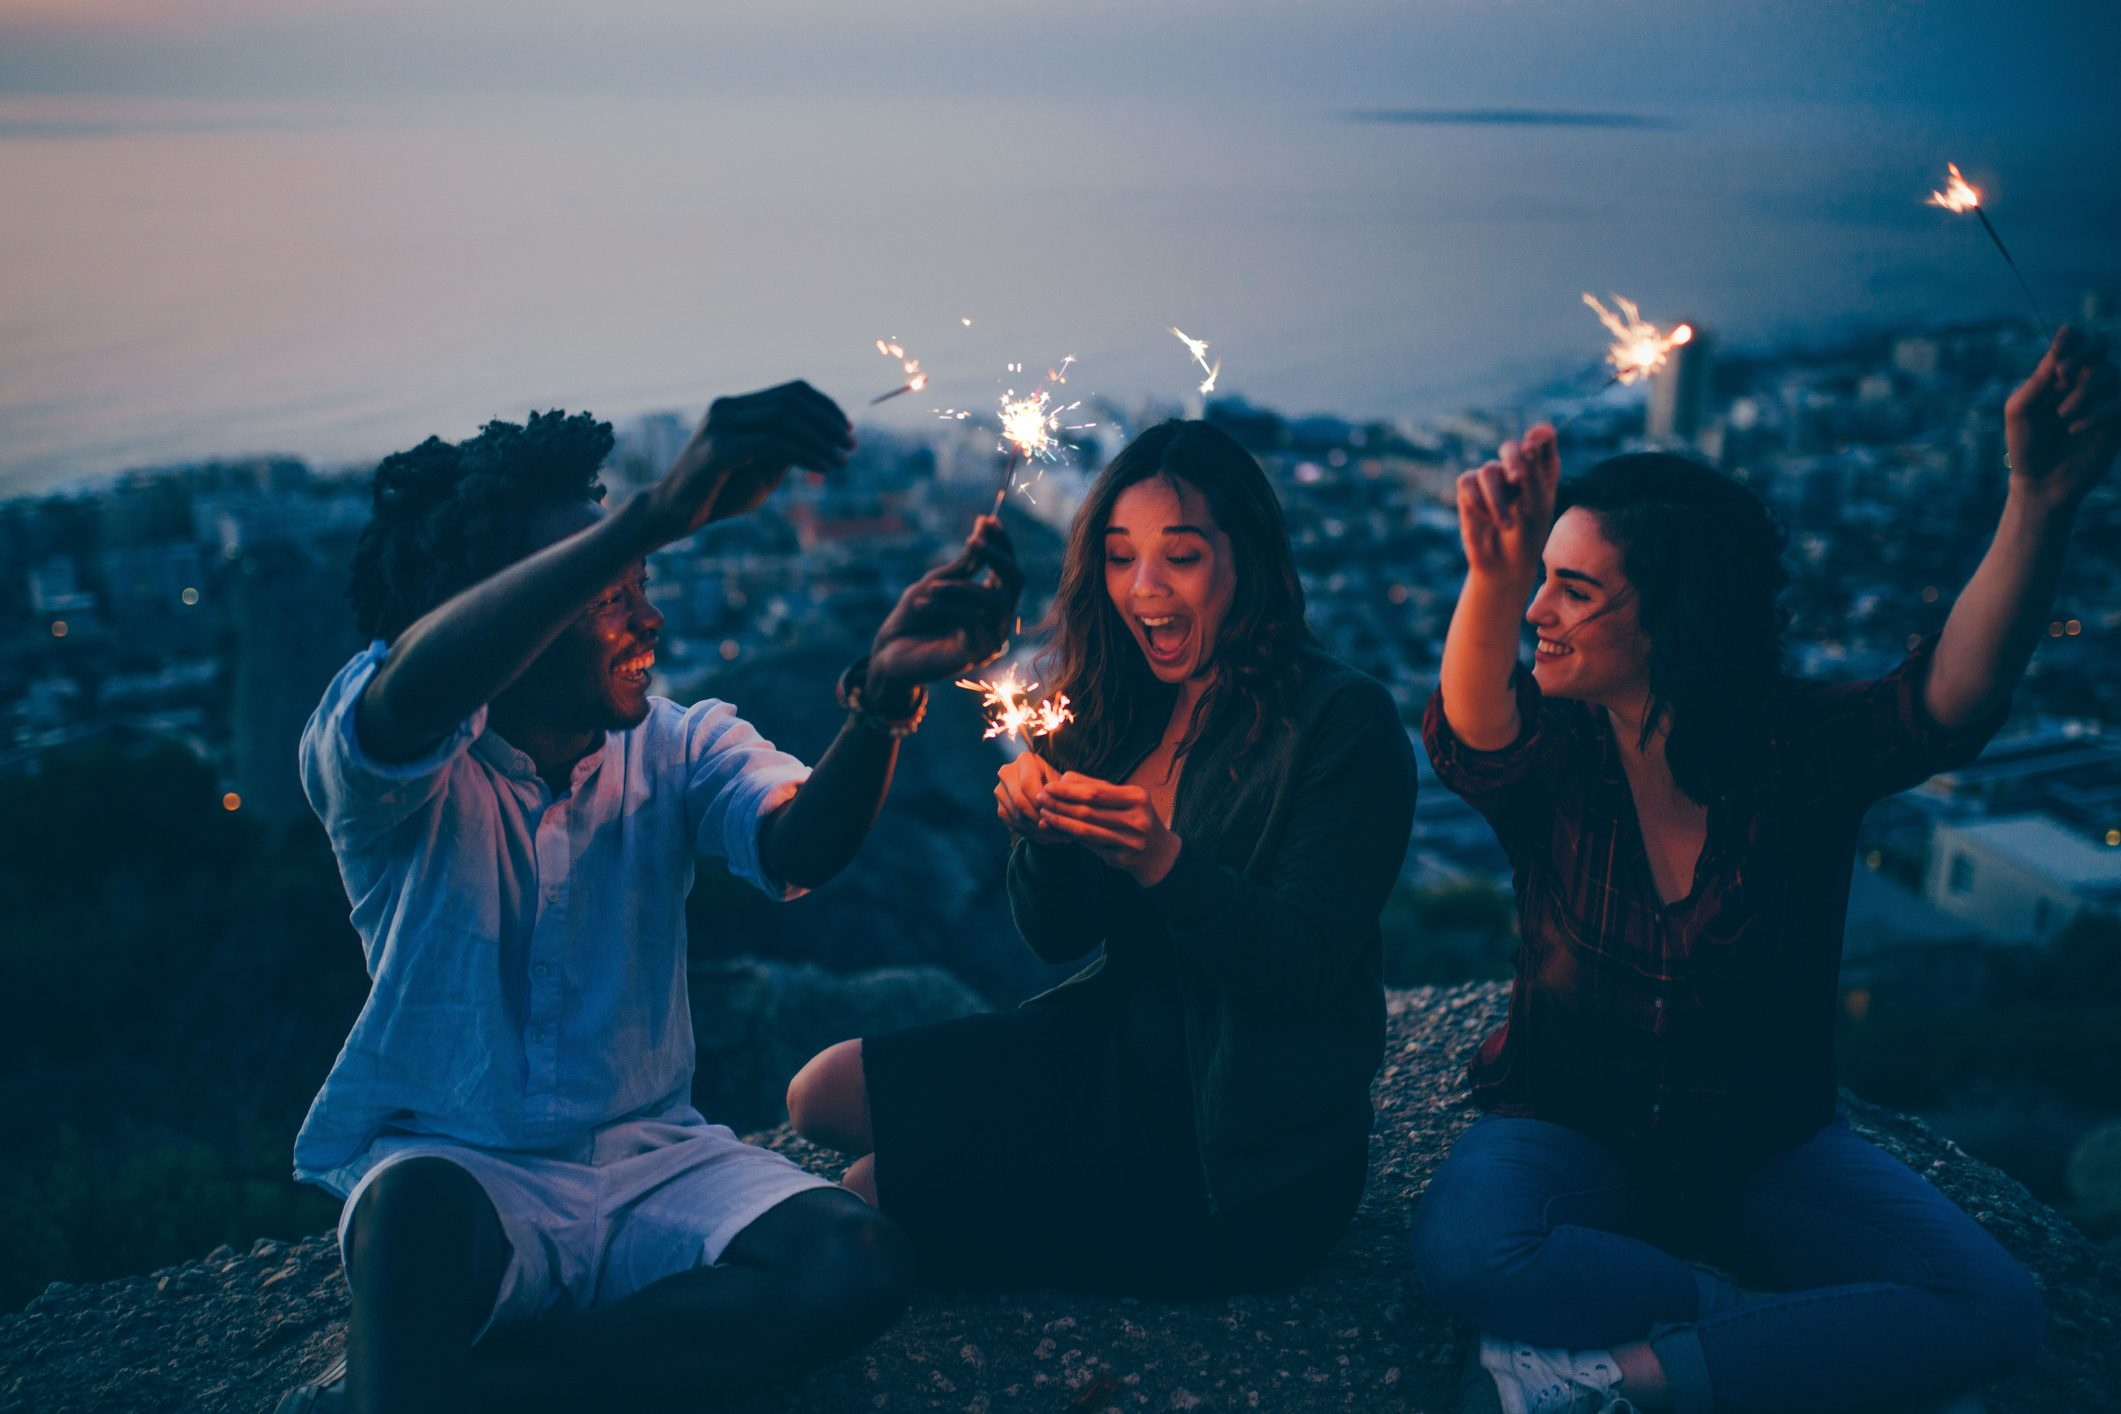 Group of friends celebrating with sparklers at night